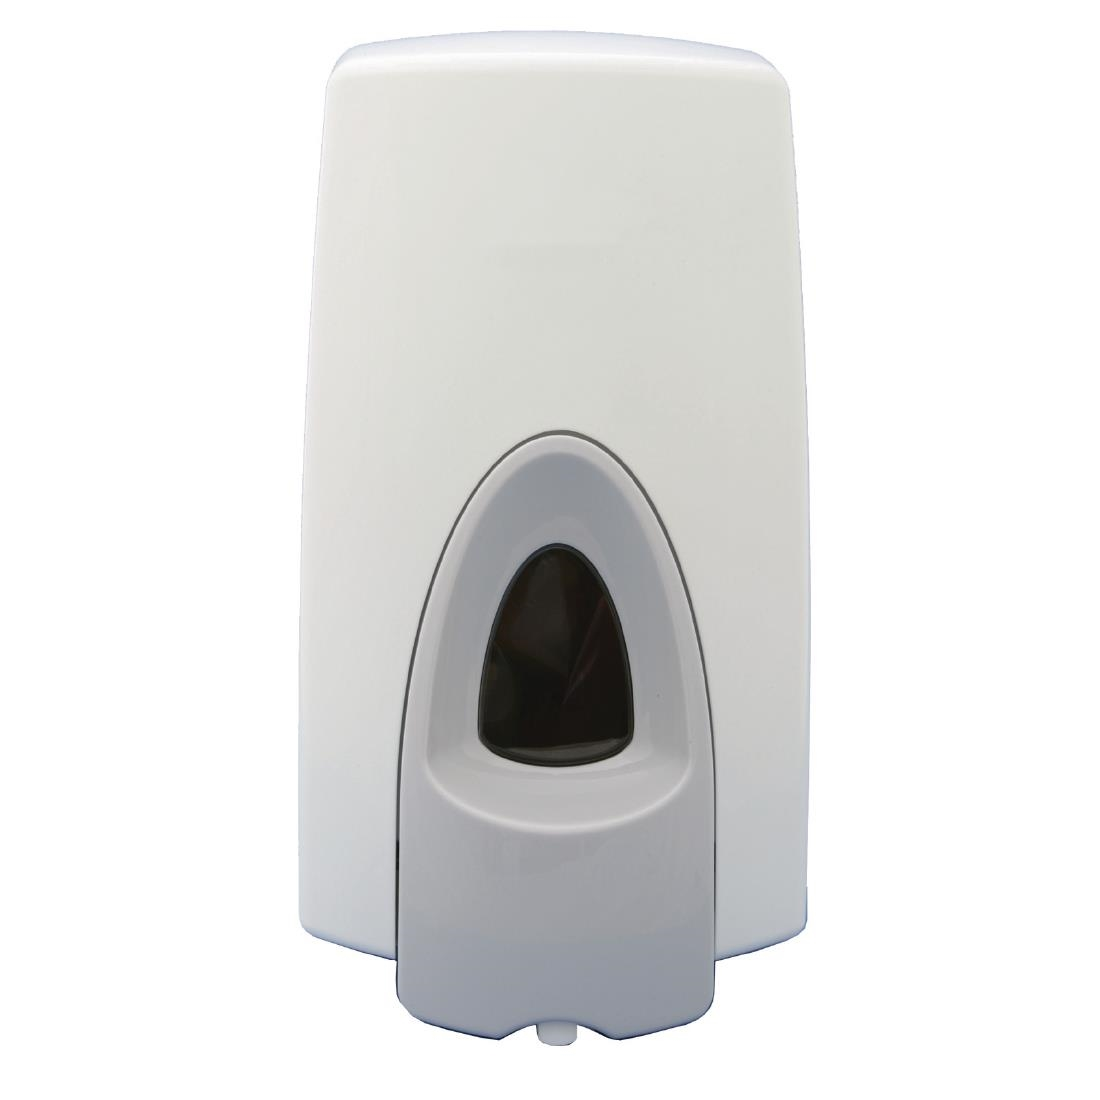 Peachy Rubbermaid White Foam Hand Soap Dispenser Caraccident5 Cool Chair Designs And Ideas Caraccident5Info